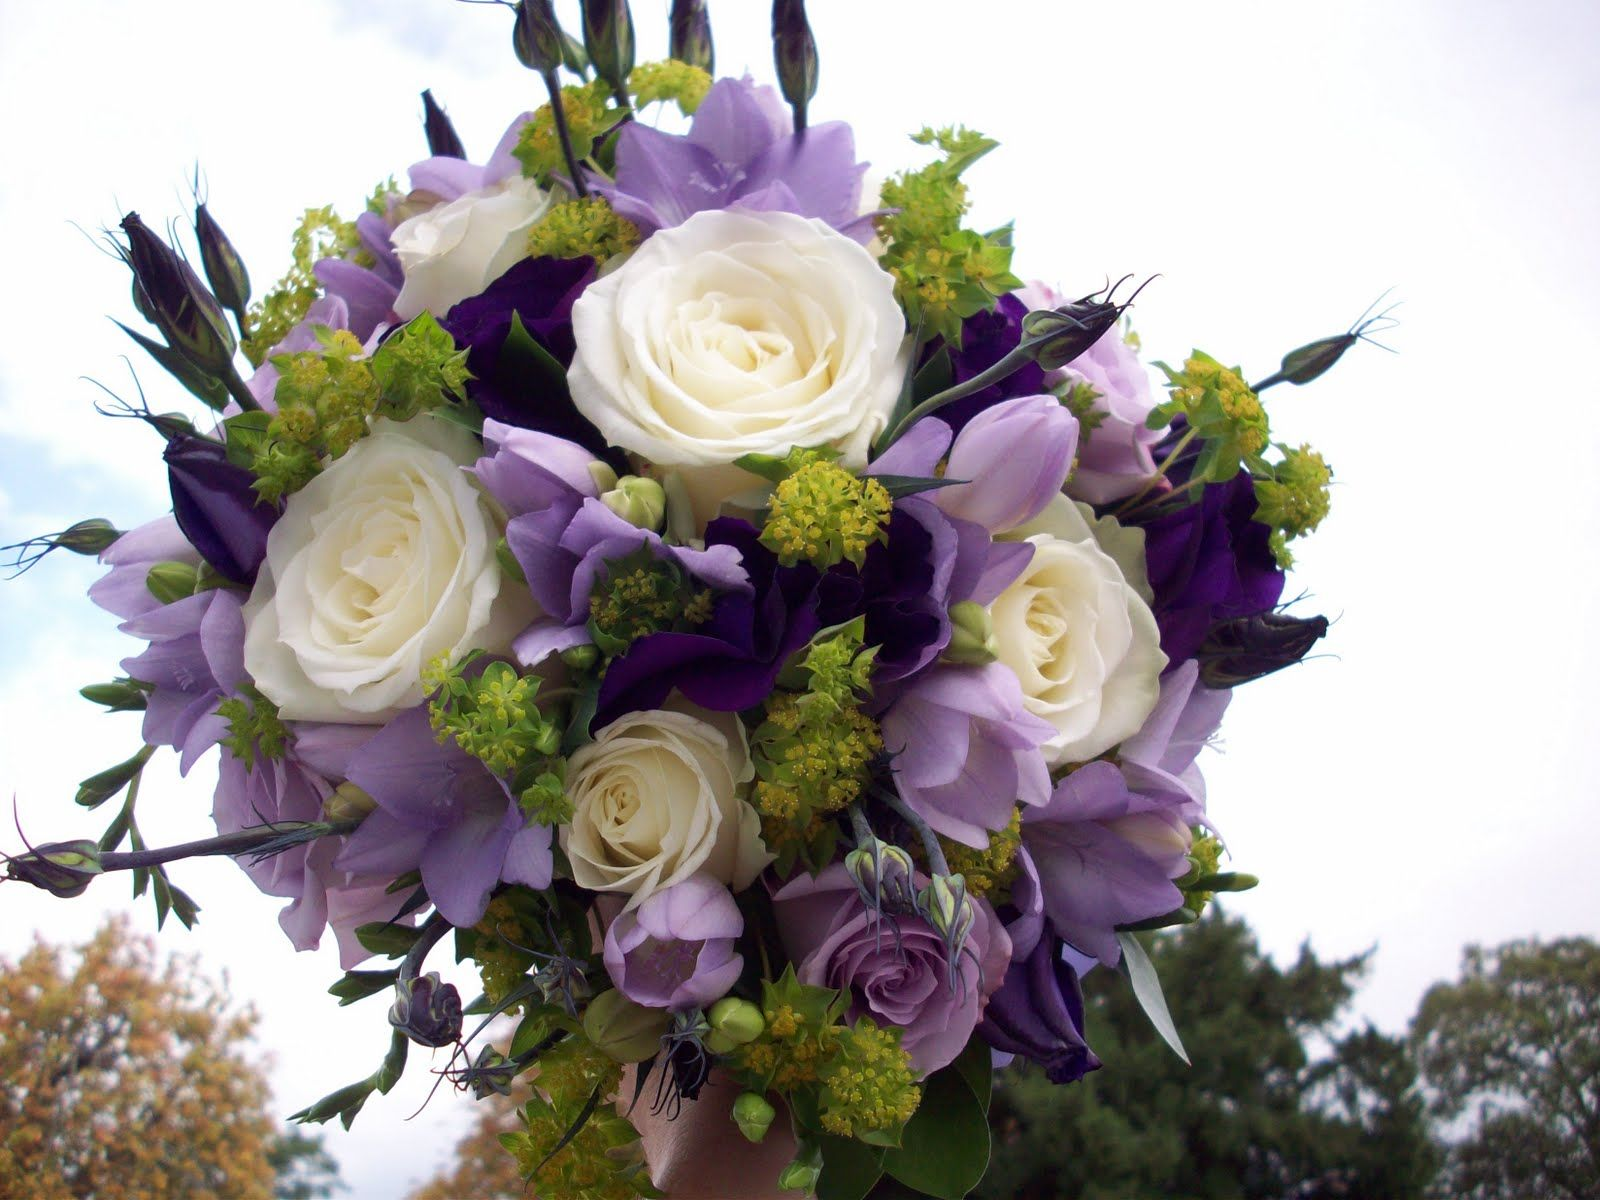 Romantic lilac wedding themes white roses lilac for Green colour rose images